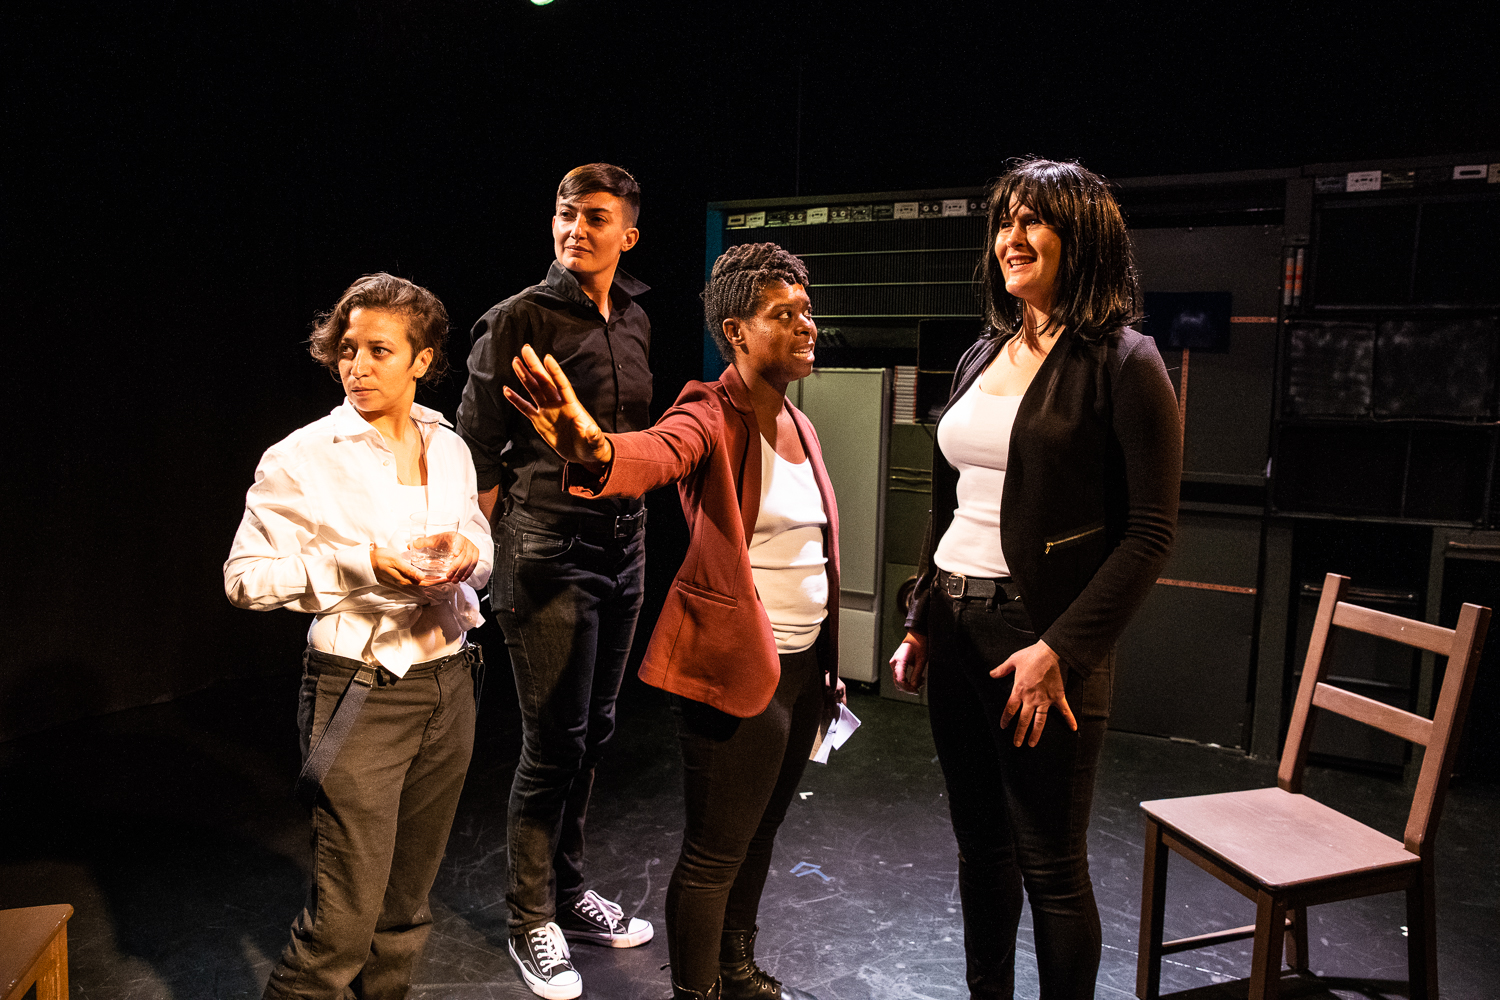 Jackie Rivera, Megan P. Hanley, Jehan O. Young, and Alanna Coby in  Tiny Errors at the End of the Millennium.  Photo by Al Foote III.